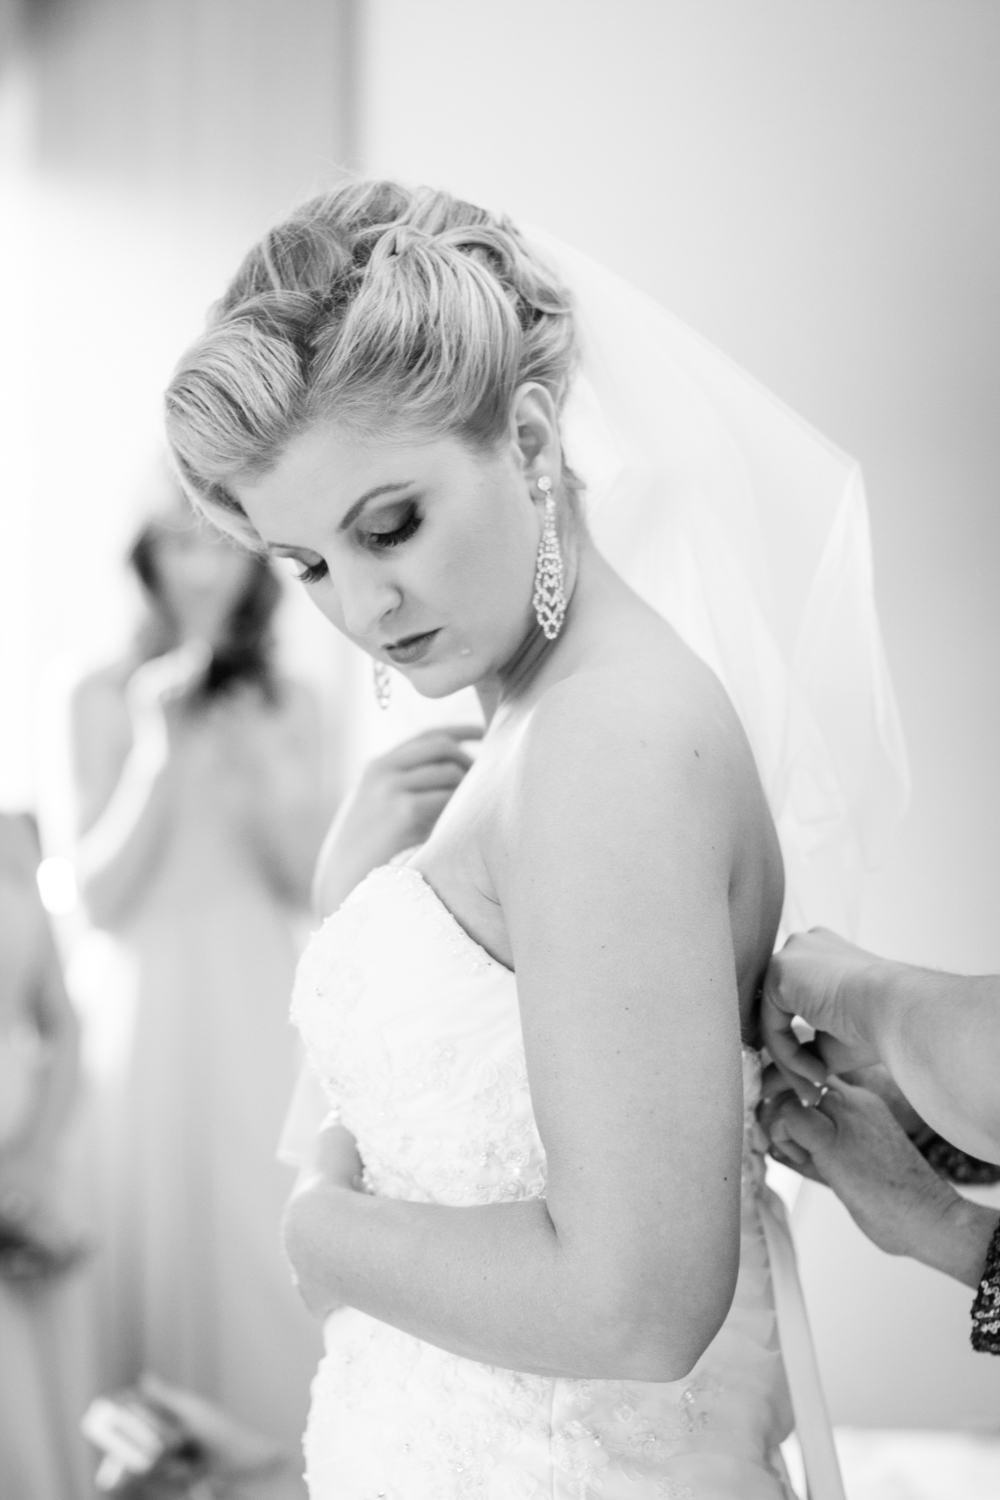 Brett-Dorrian-Minneapolis-Minnesota-Makeup-and-Hair-Artist